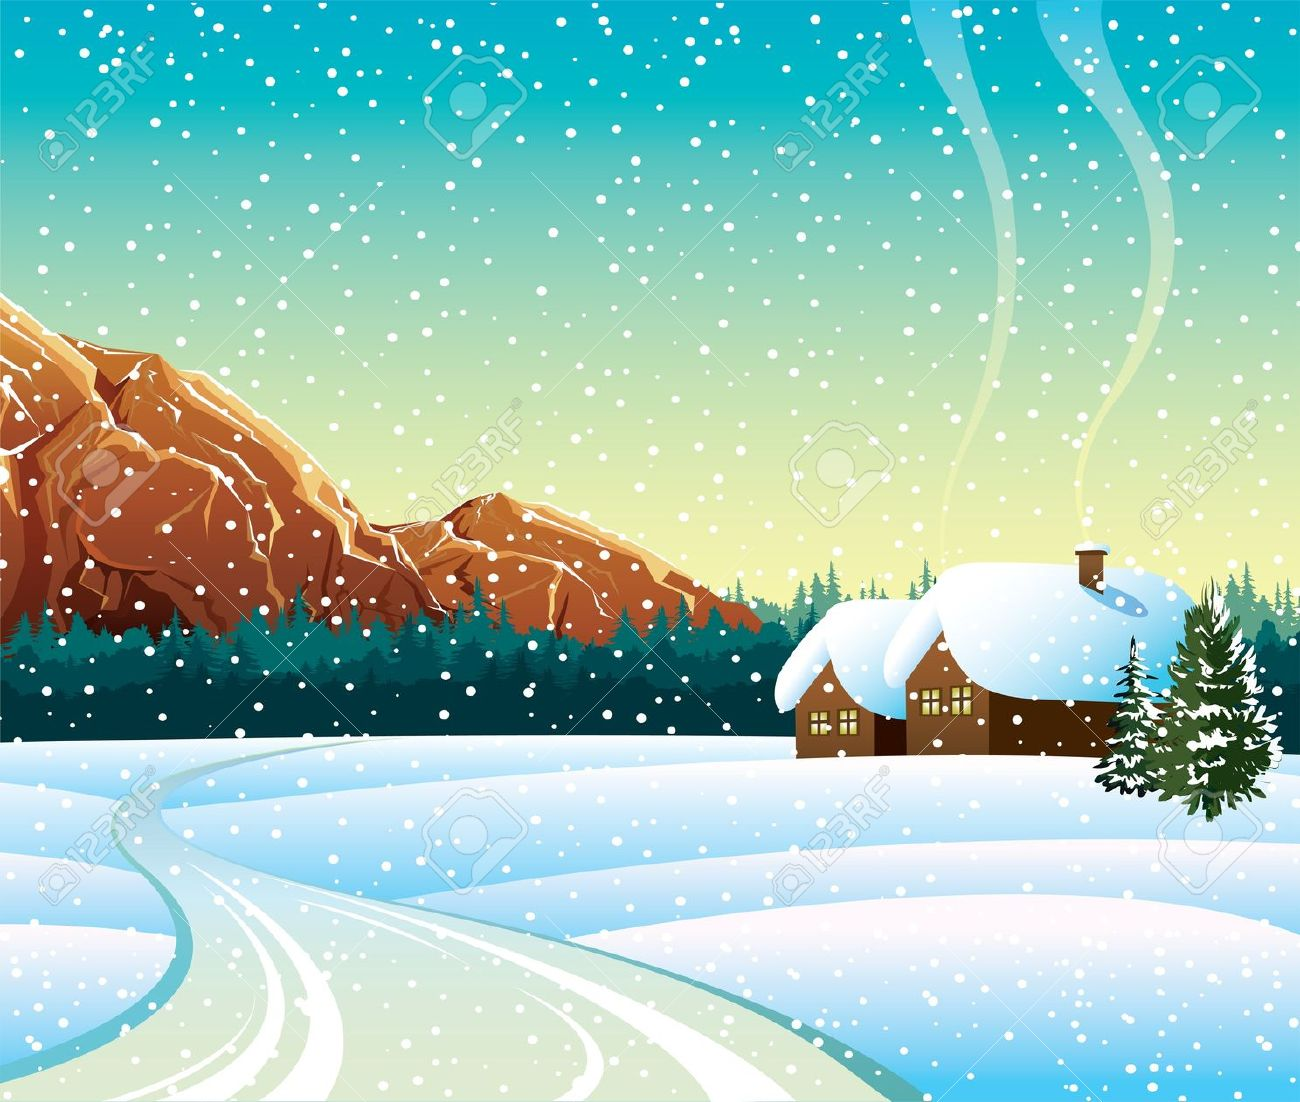 Snowy road clipart.